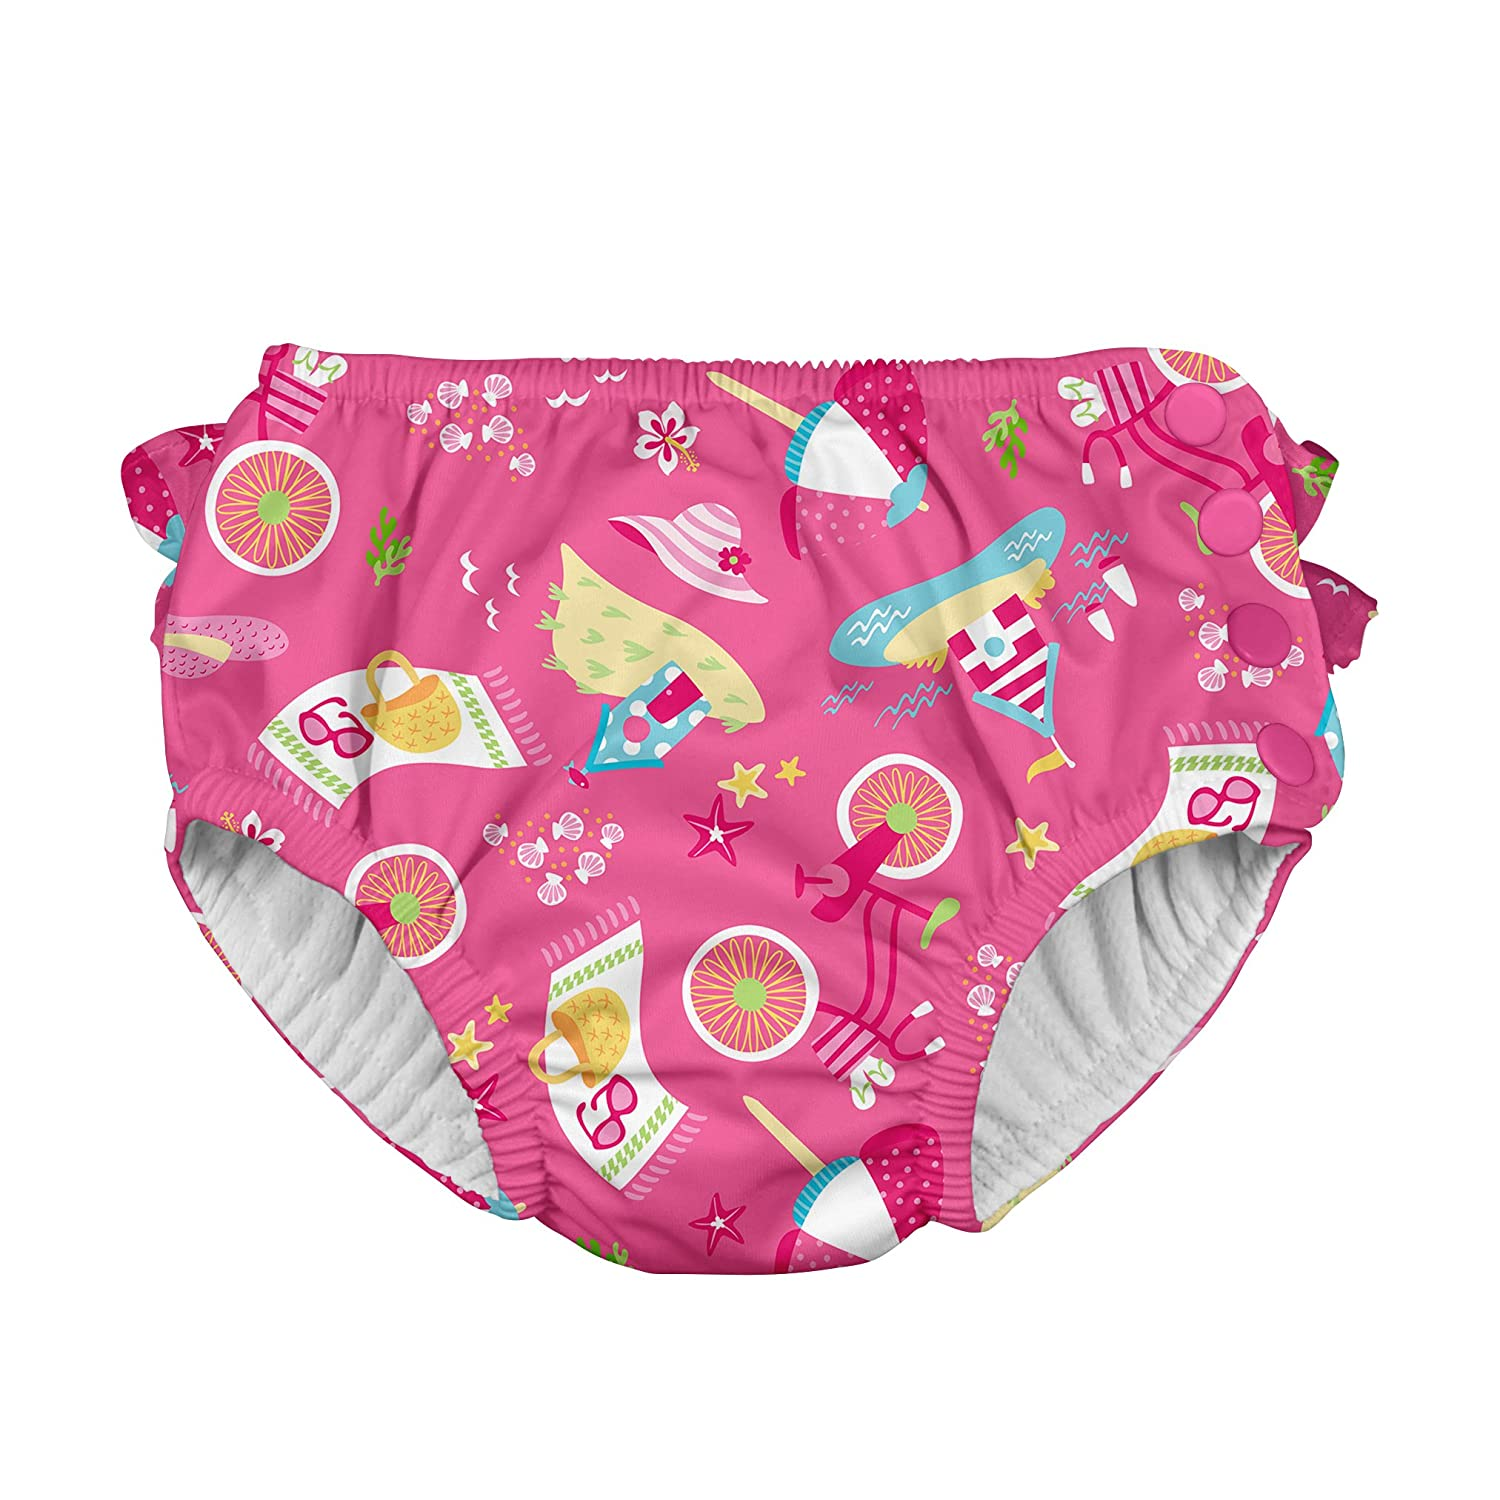 i play. Baby Girls Ruffle Snap Reusable Absorbent Swimsuit Diaper i play Children' s Apparel 711060-2300-42